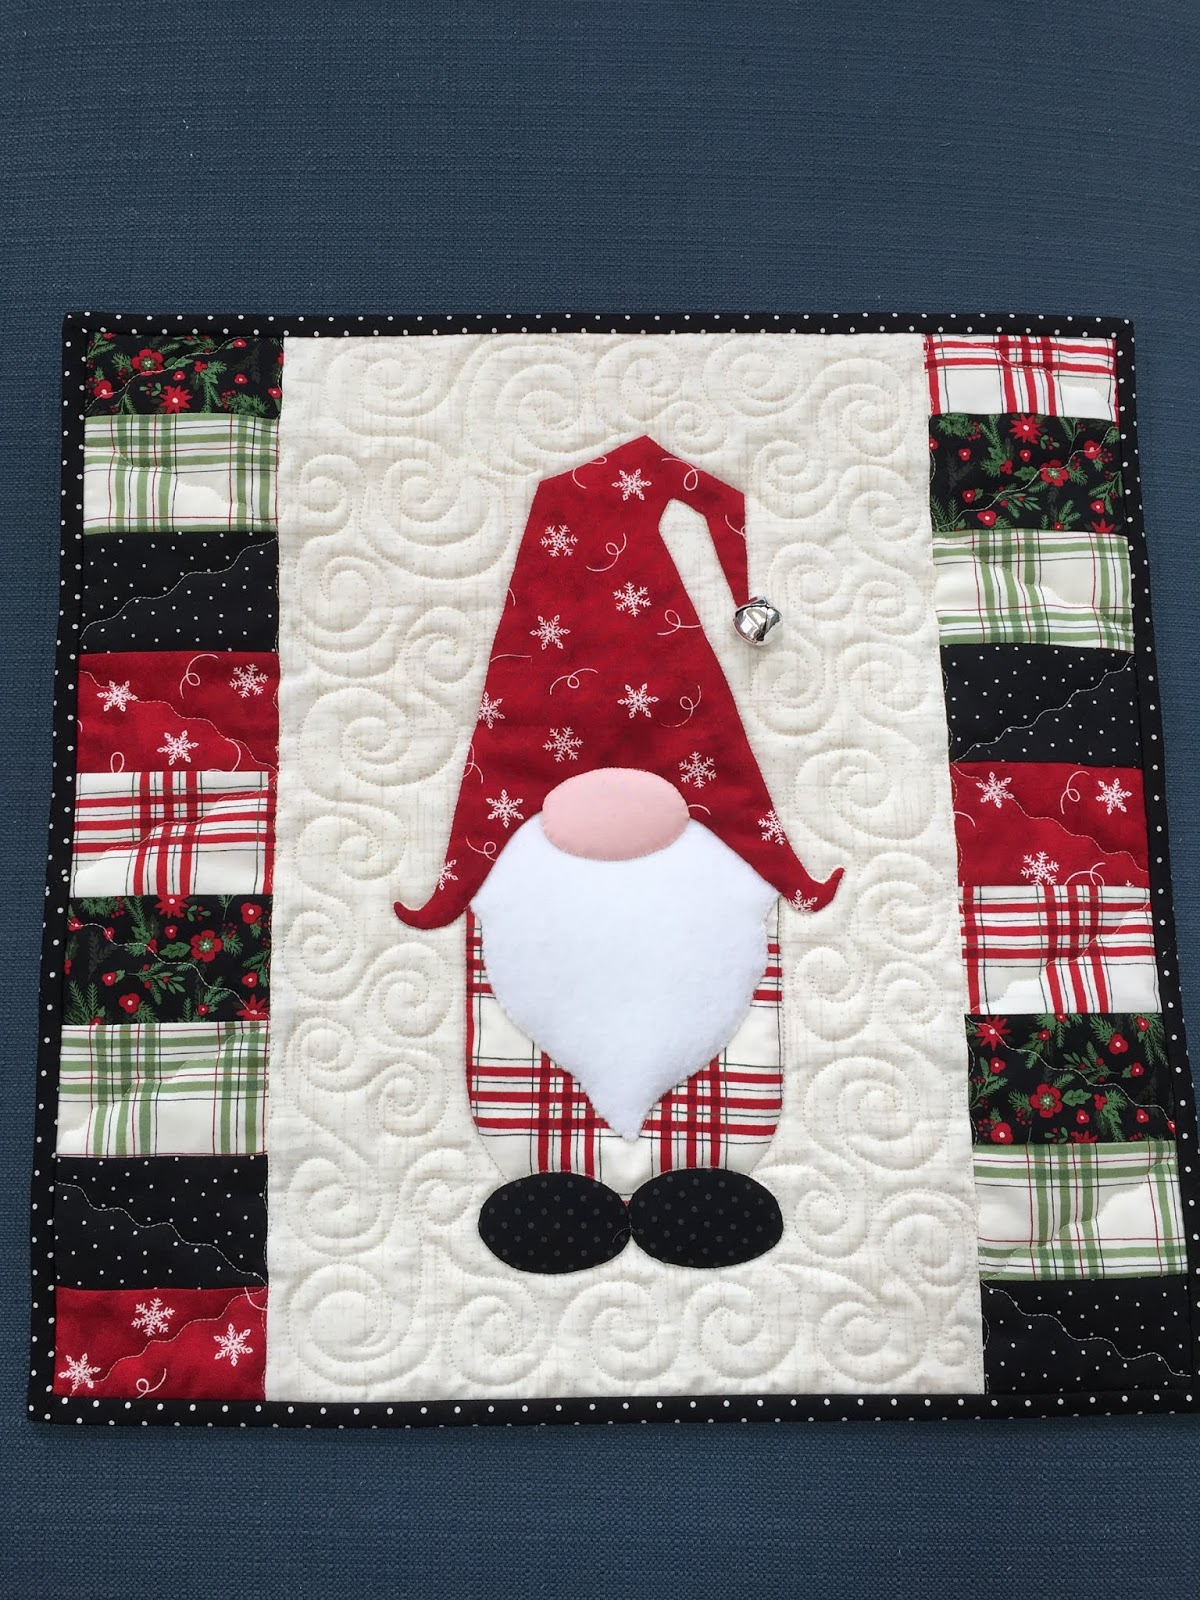 Pin by Debora McCadden on Sewing (With images) Christmas